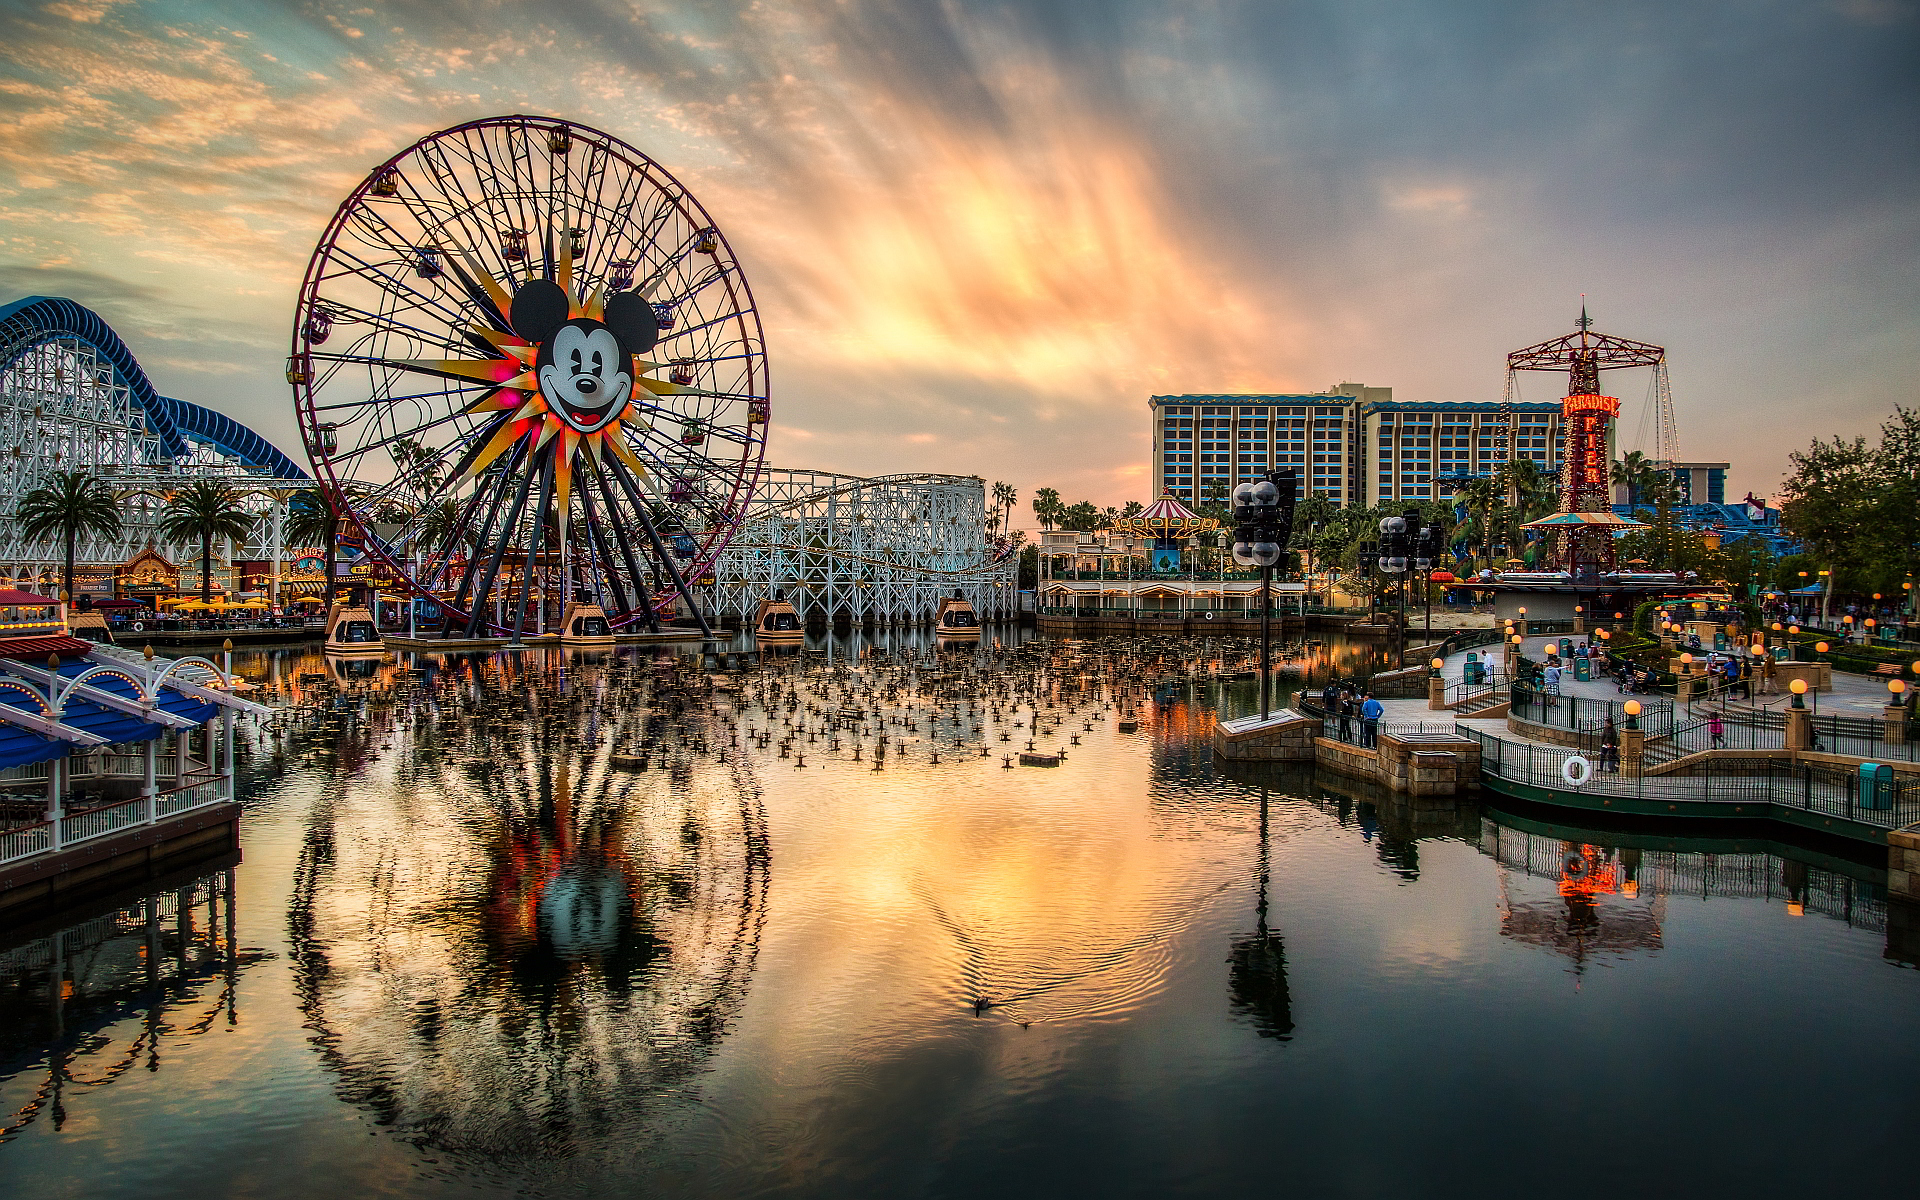 Paradise pier disneyland Wallpapers Pictures Photos Images · «